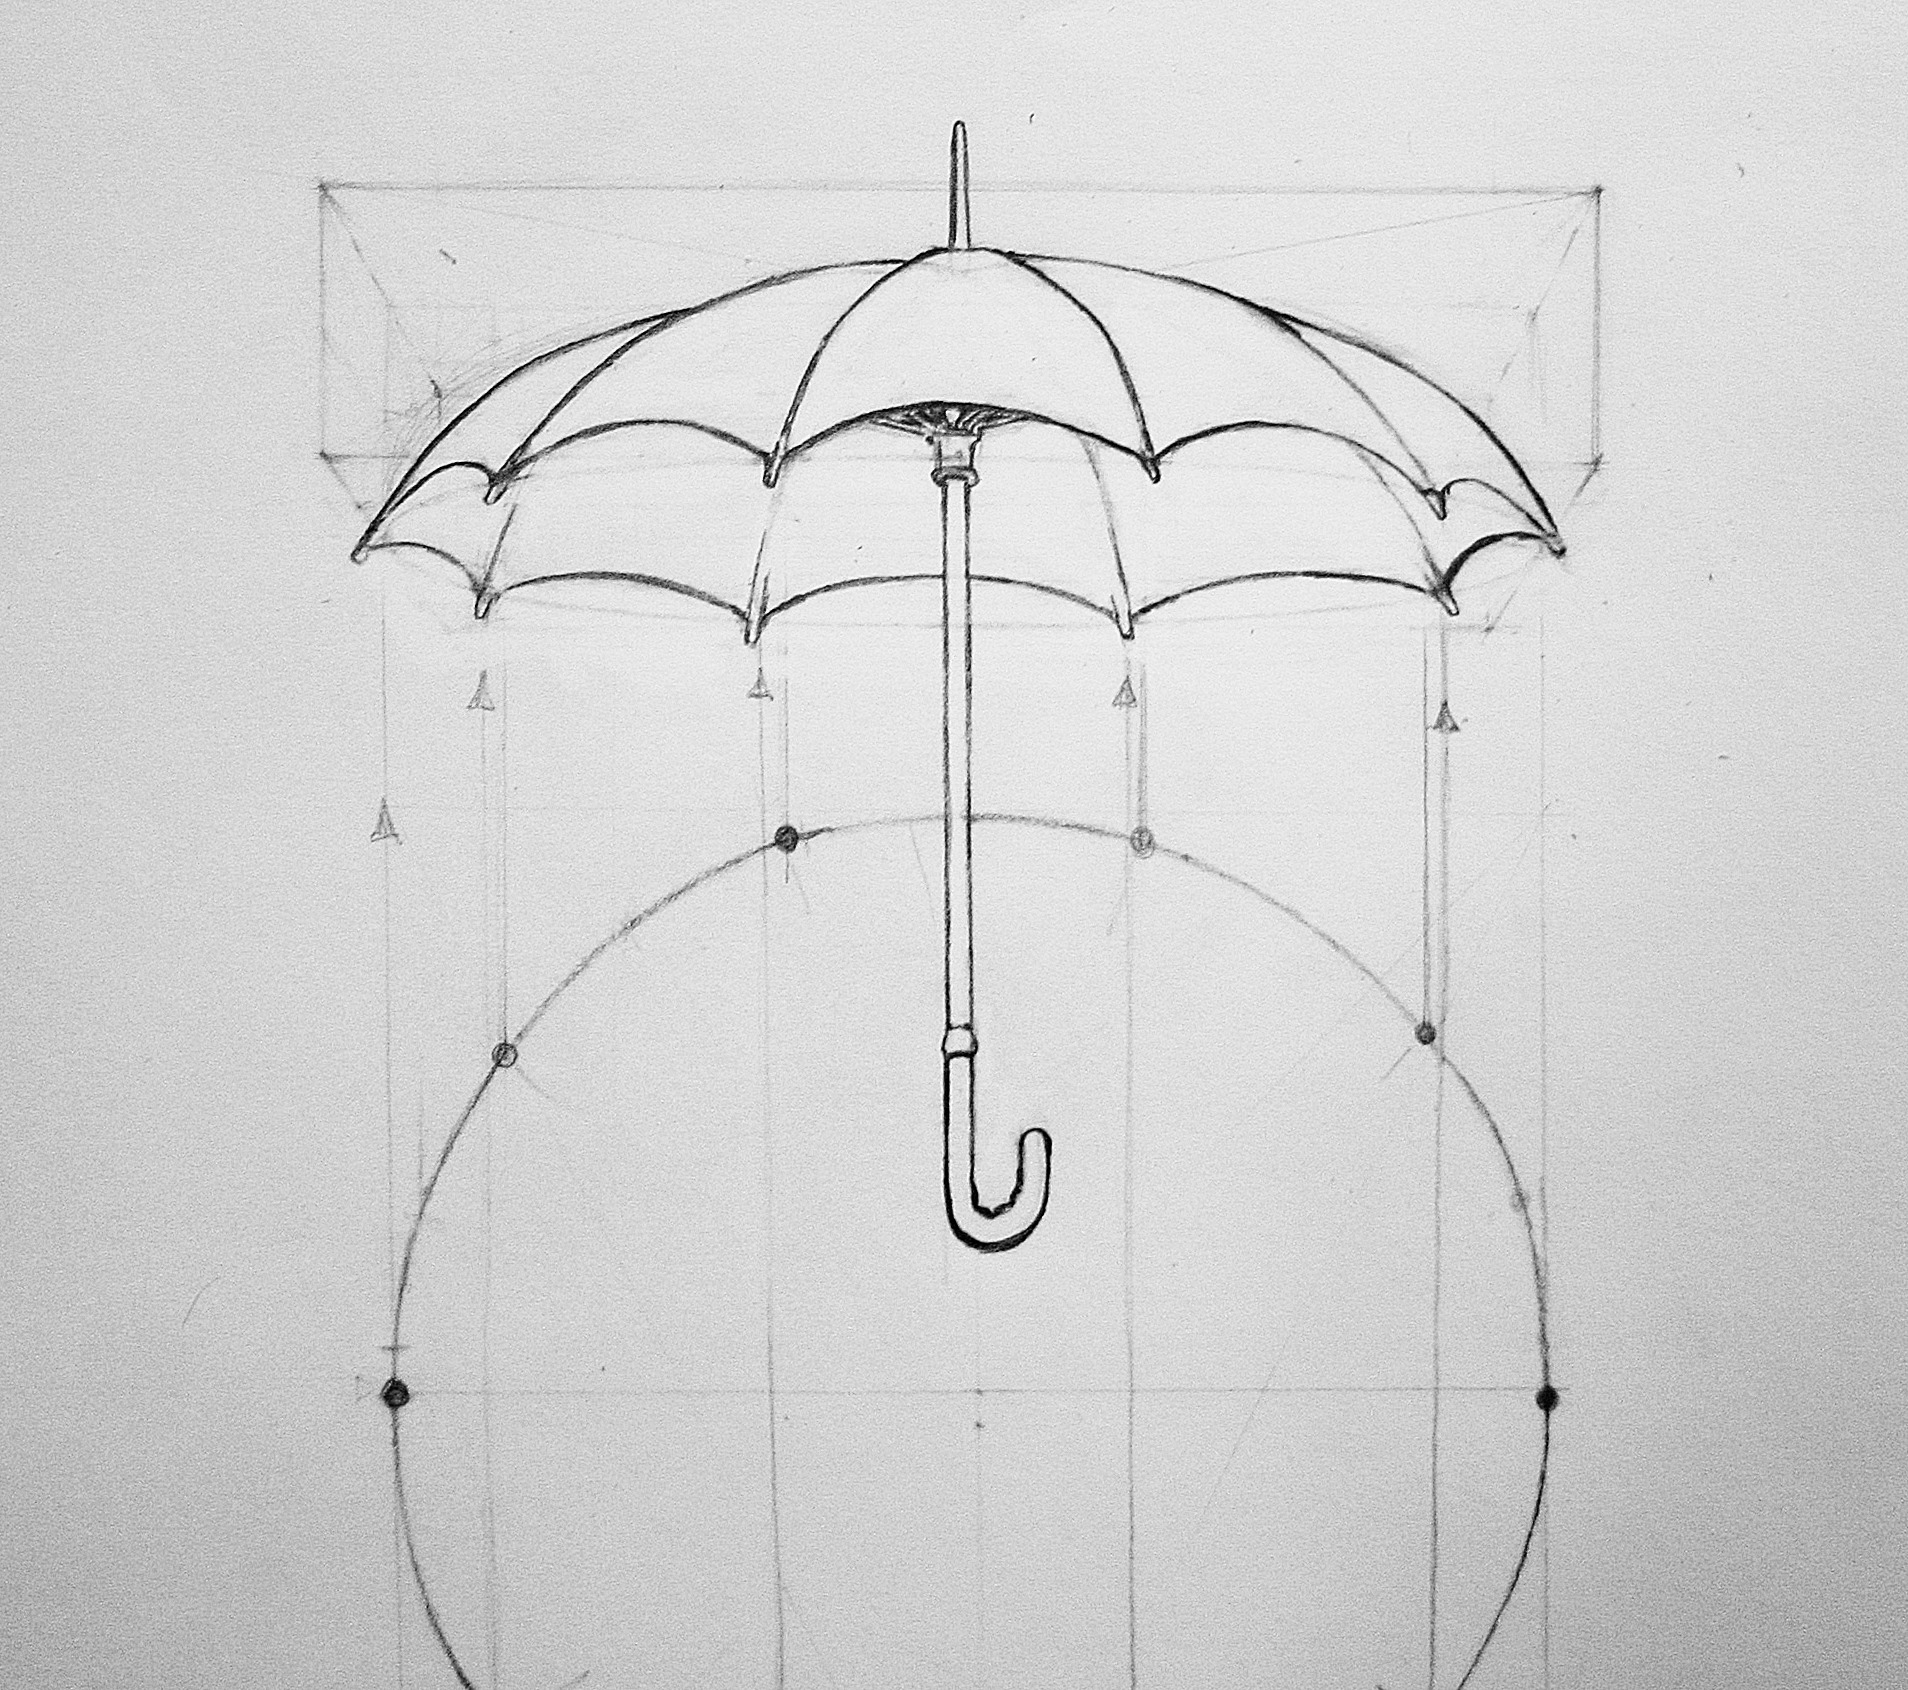 Image of an umbrella drawing using perspective of the circle and projecting it onto the ellipse of the umbrella. Kevin McCain's drawing class on perspective teaches perspective drawing and how to do it.